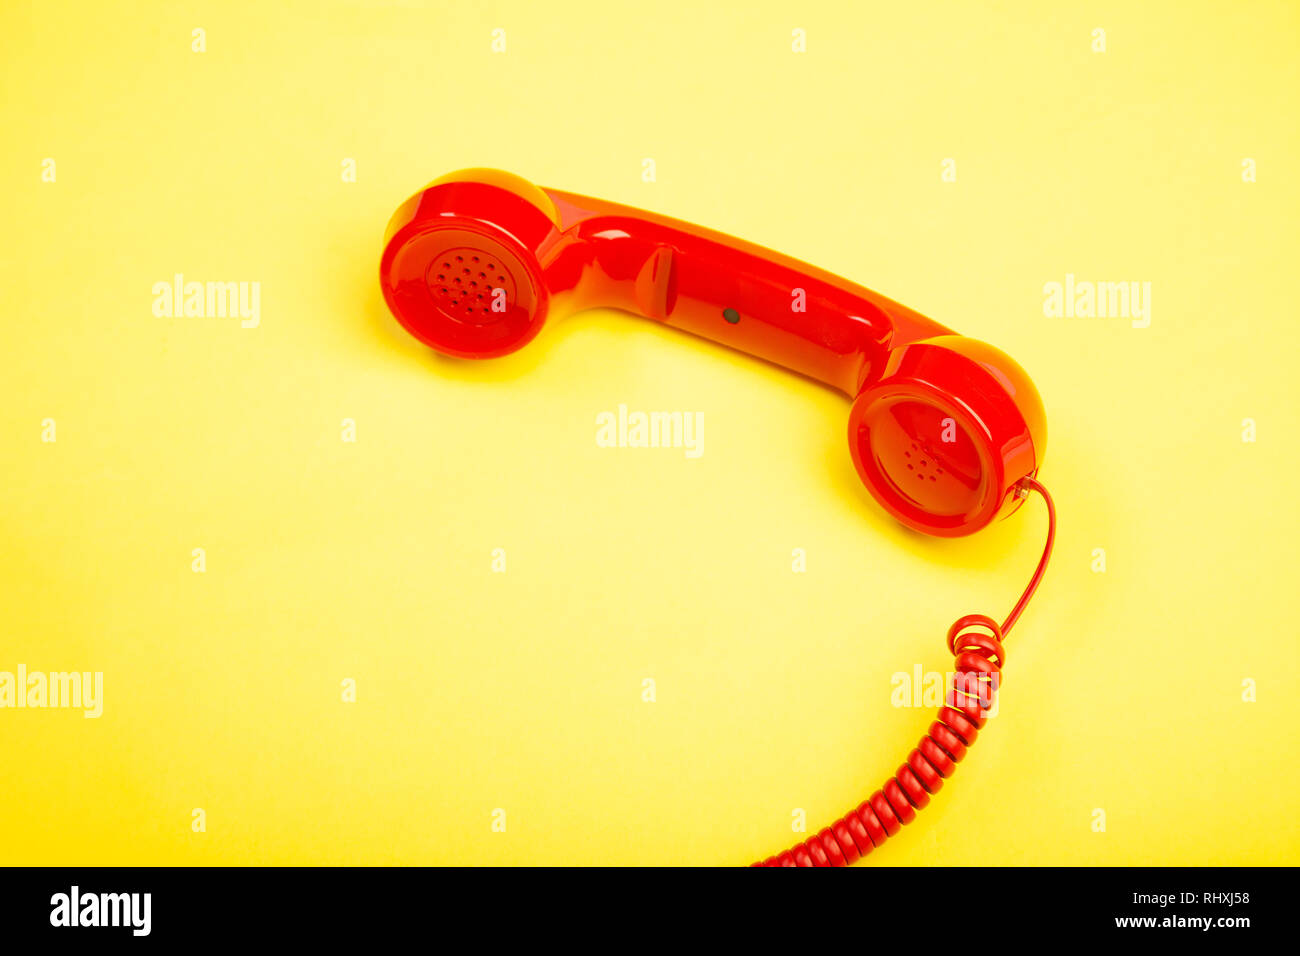 A red retro telephone handset lying on it's side against a yellow background. - Stock Image